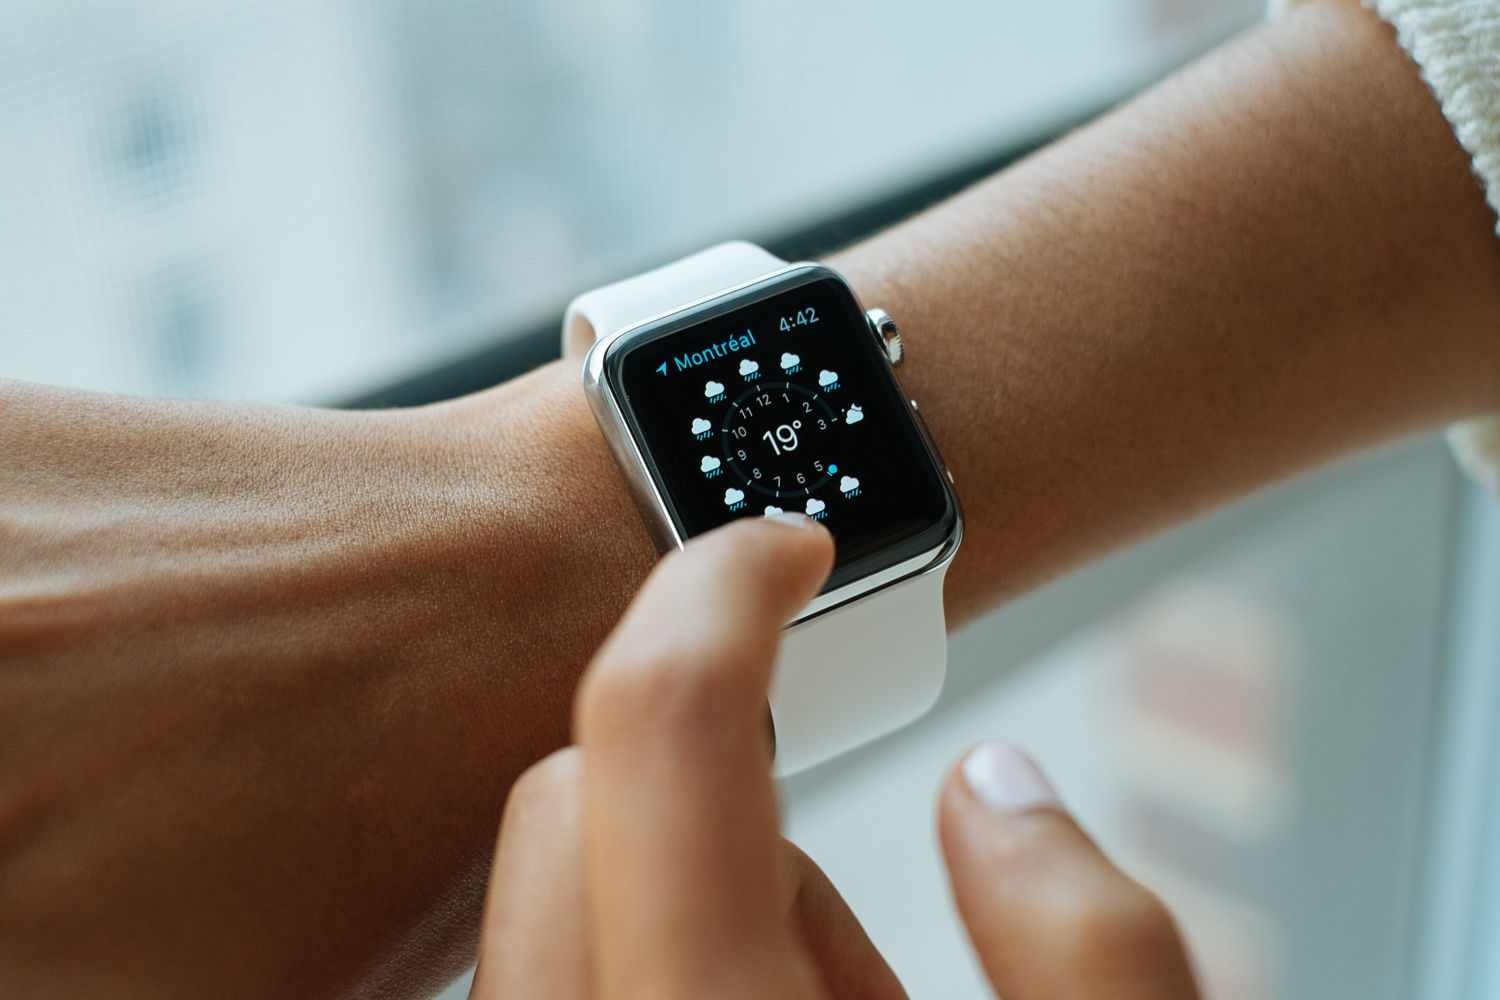 Apple Watch on a woman's arm